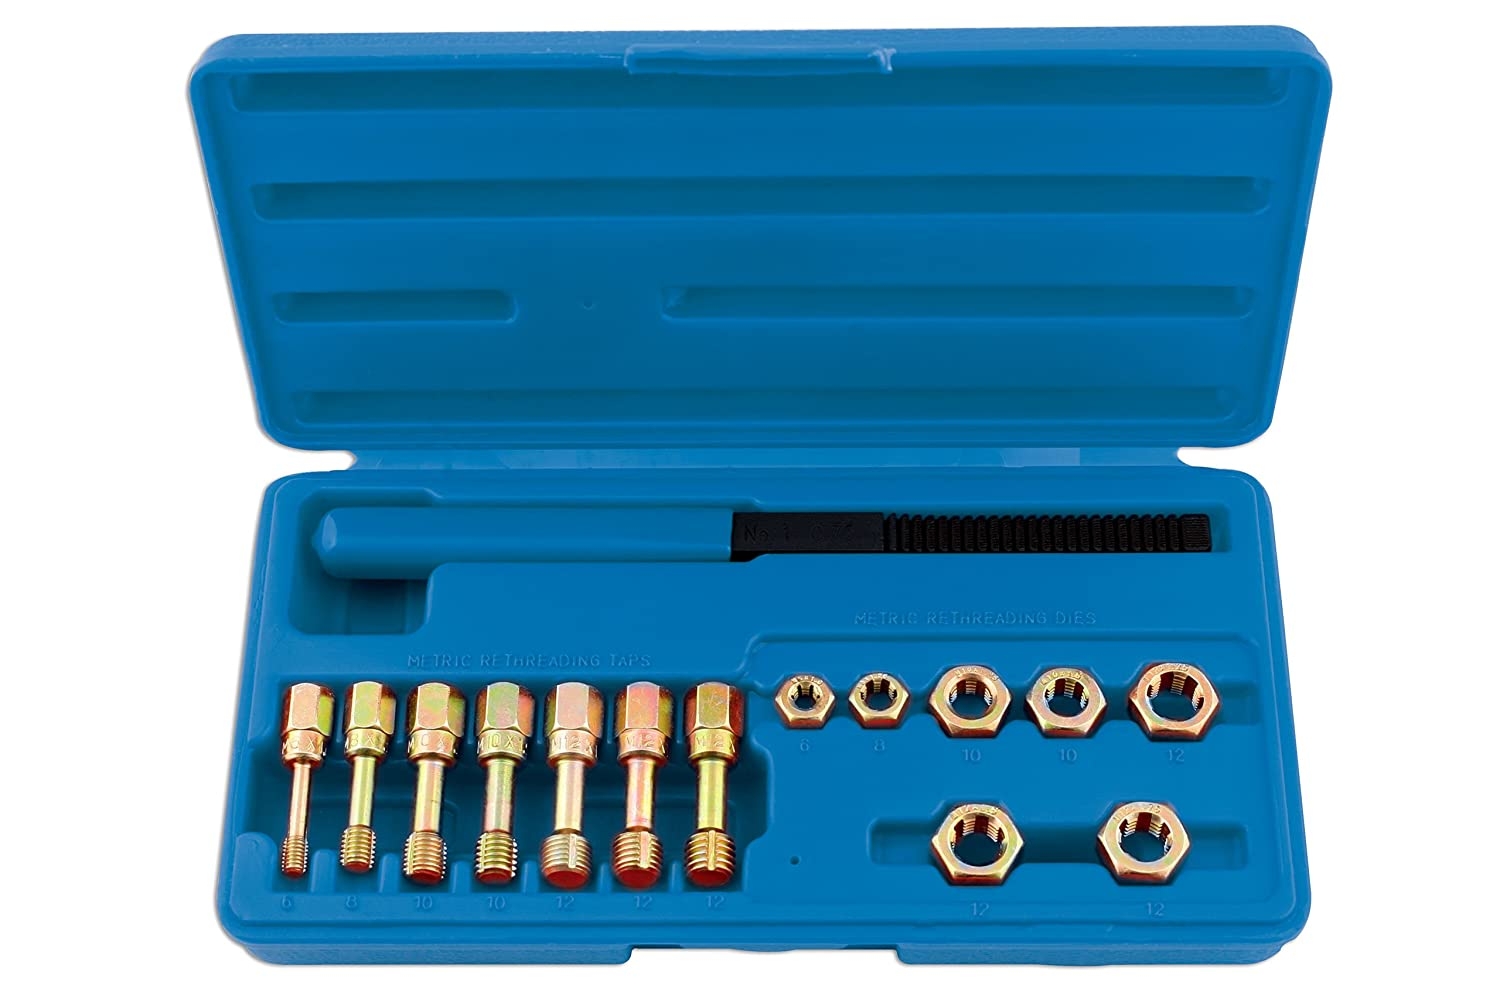 Laser 5555 Metric Thread Repair Kit The Tool Connection Ltd.